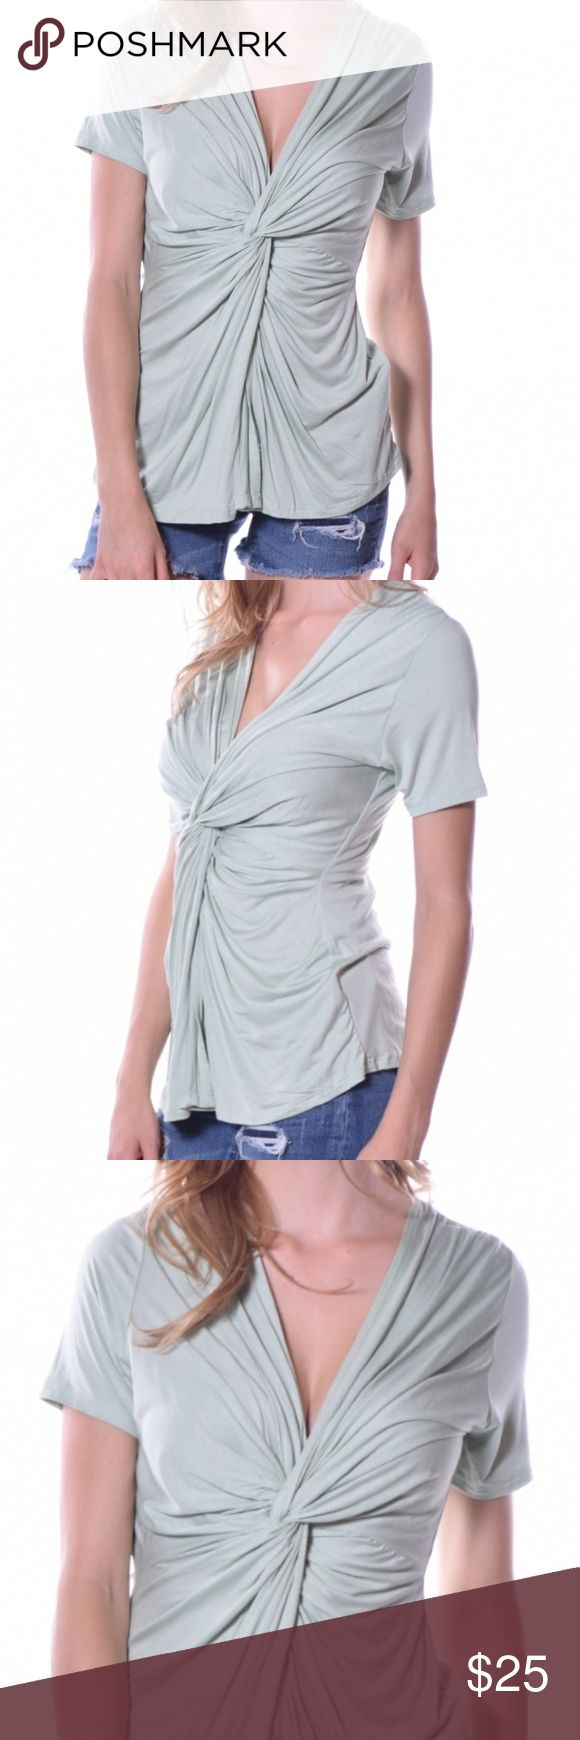 Now Available! Pastel Clothing Twist Top Sage green soft, beautiful top, with lots of drape. Preorders will ship out by the end of the month. And welcome to the launch of my boutique! Pastels Clothing Tops Blouses